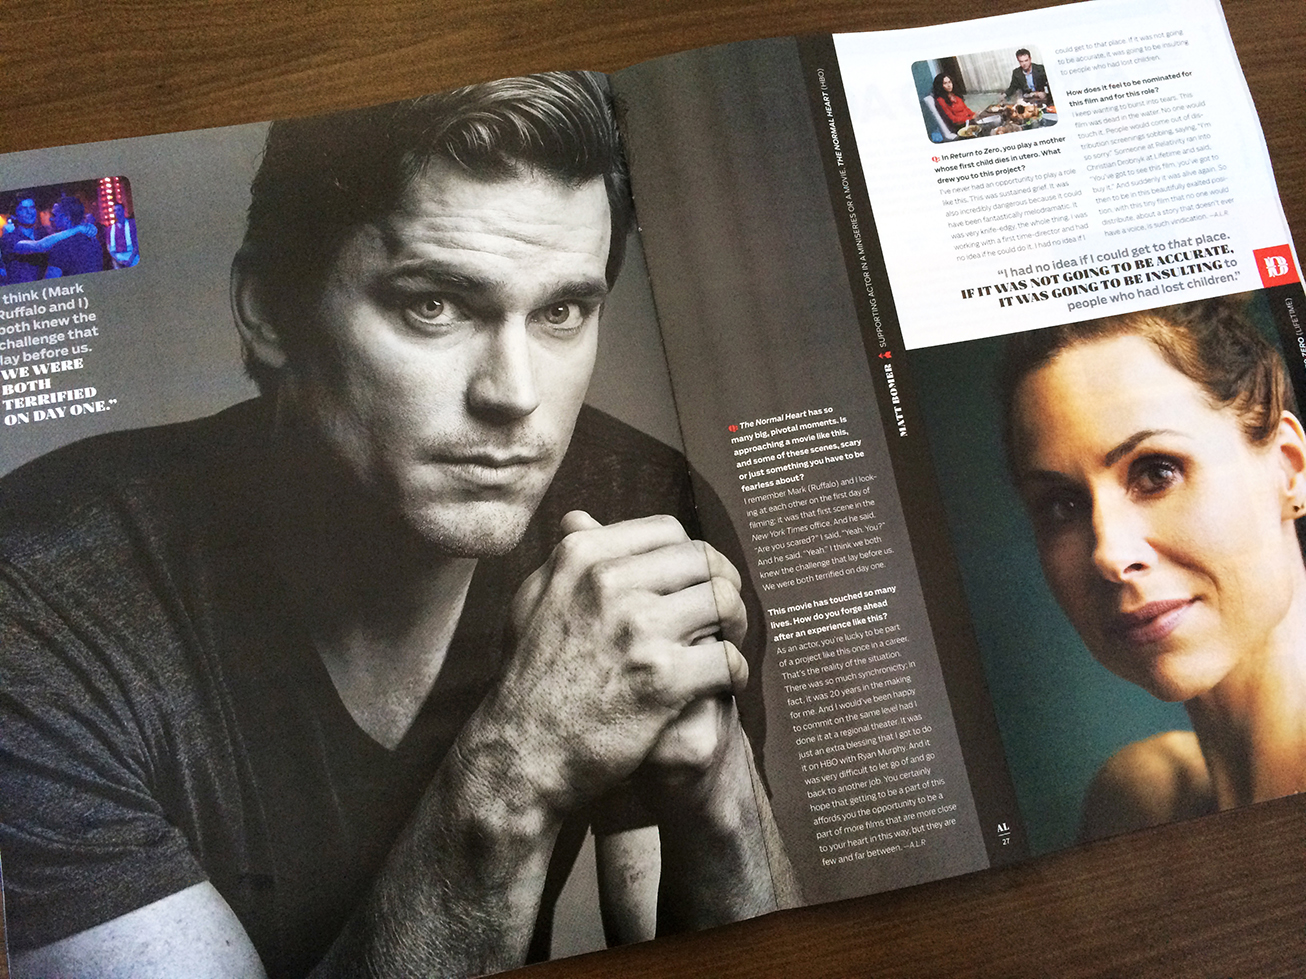 Matt Bomer (The Normal Heart), photographed by Mark Mann. Minnie Driver photographed by J.R. Mankoff